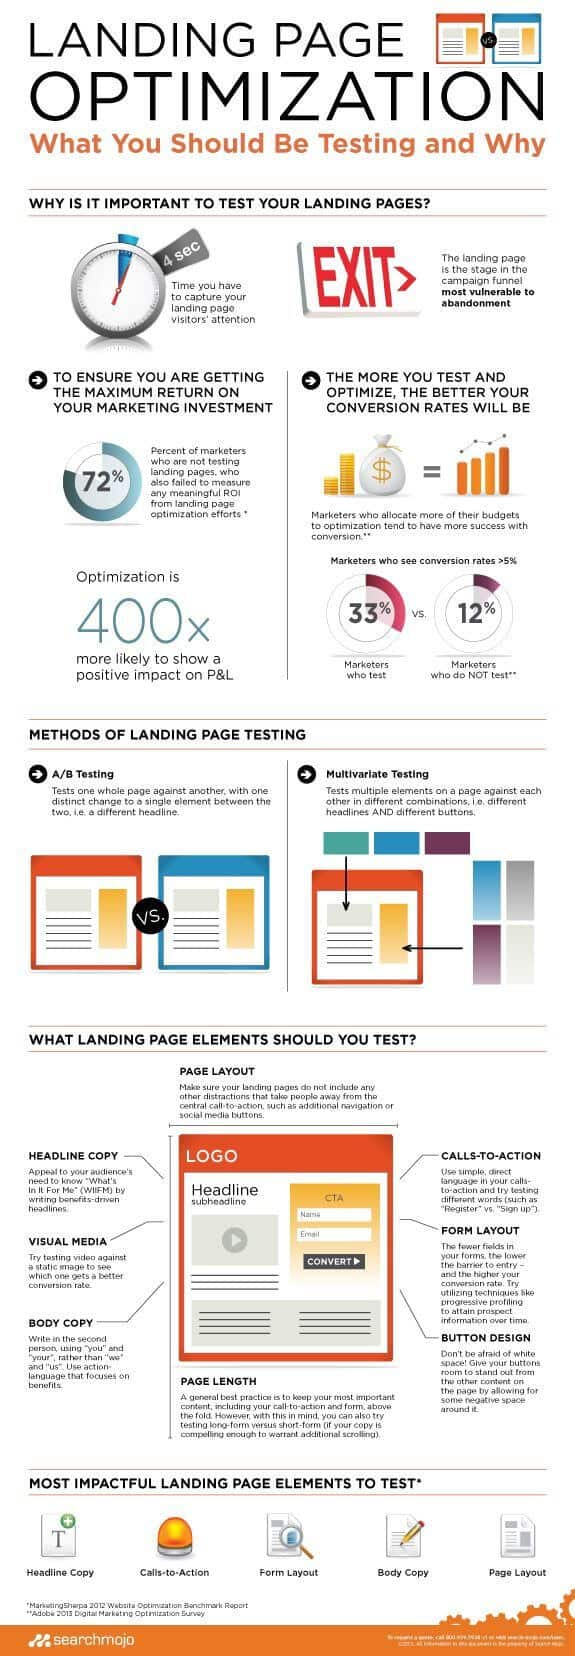 LANDING PAGE OPTIMIZATION HELP